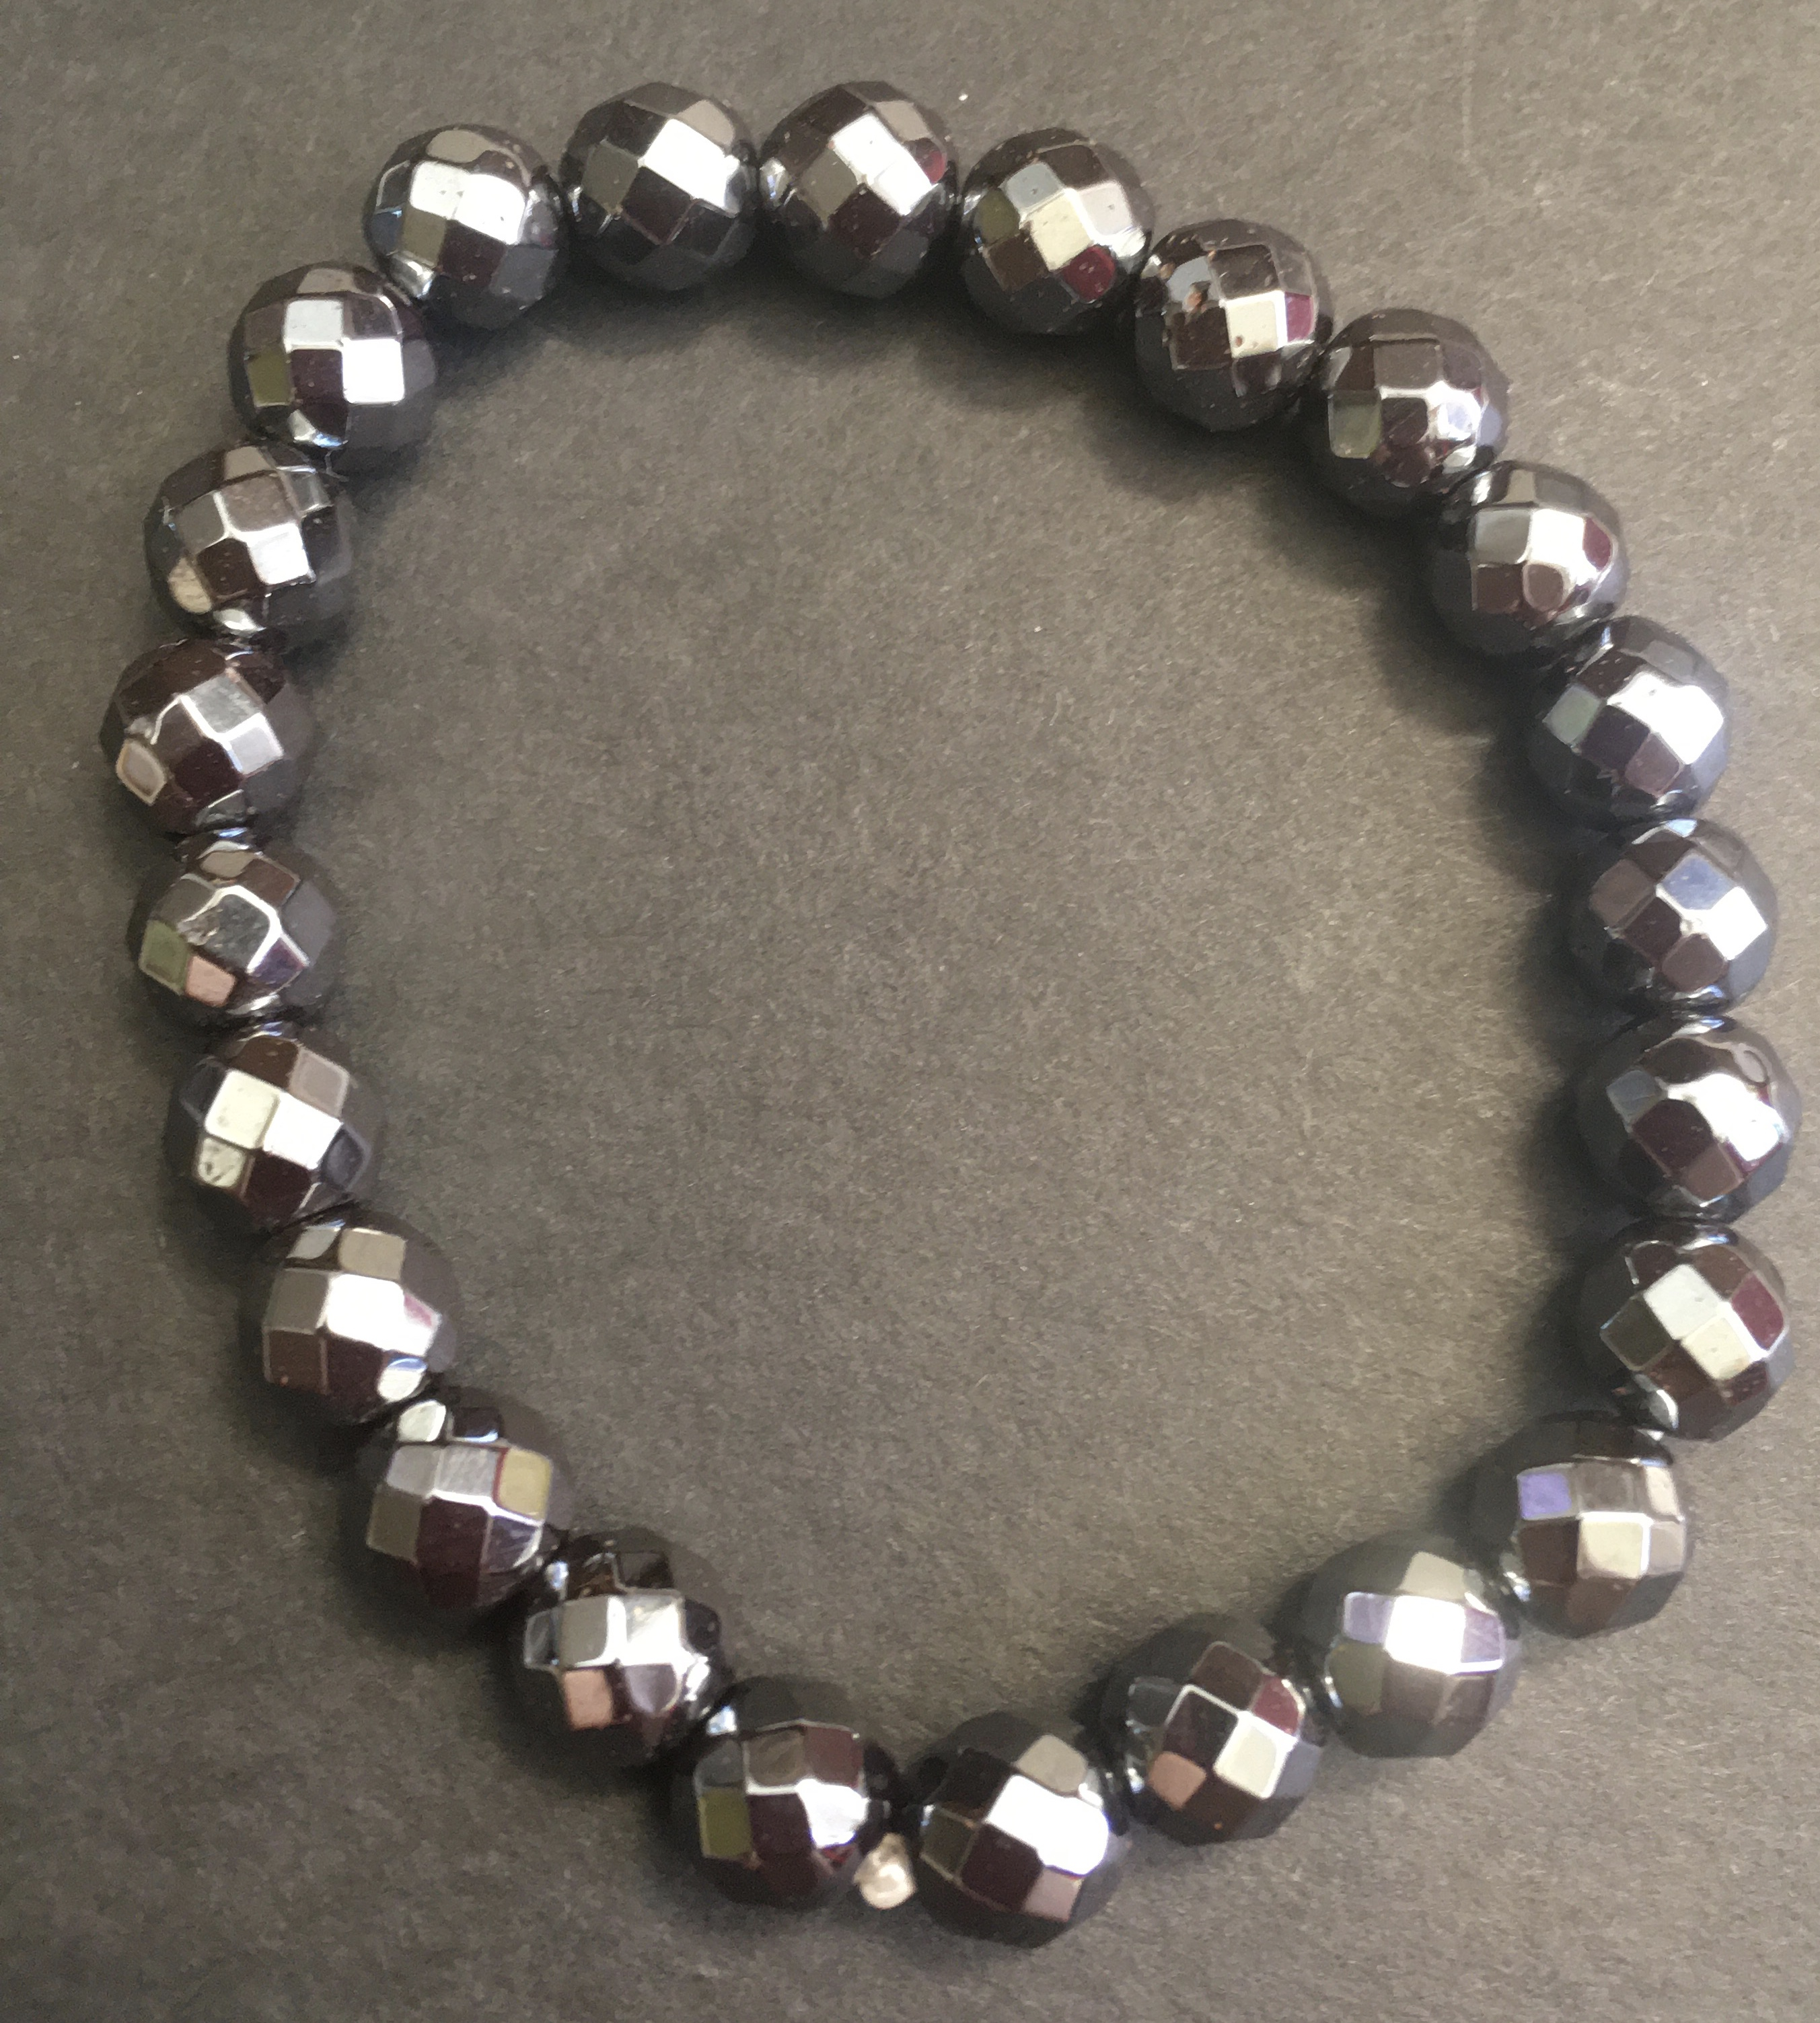 Faceted Hematite Beads Bracelet